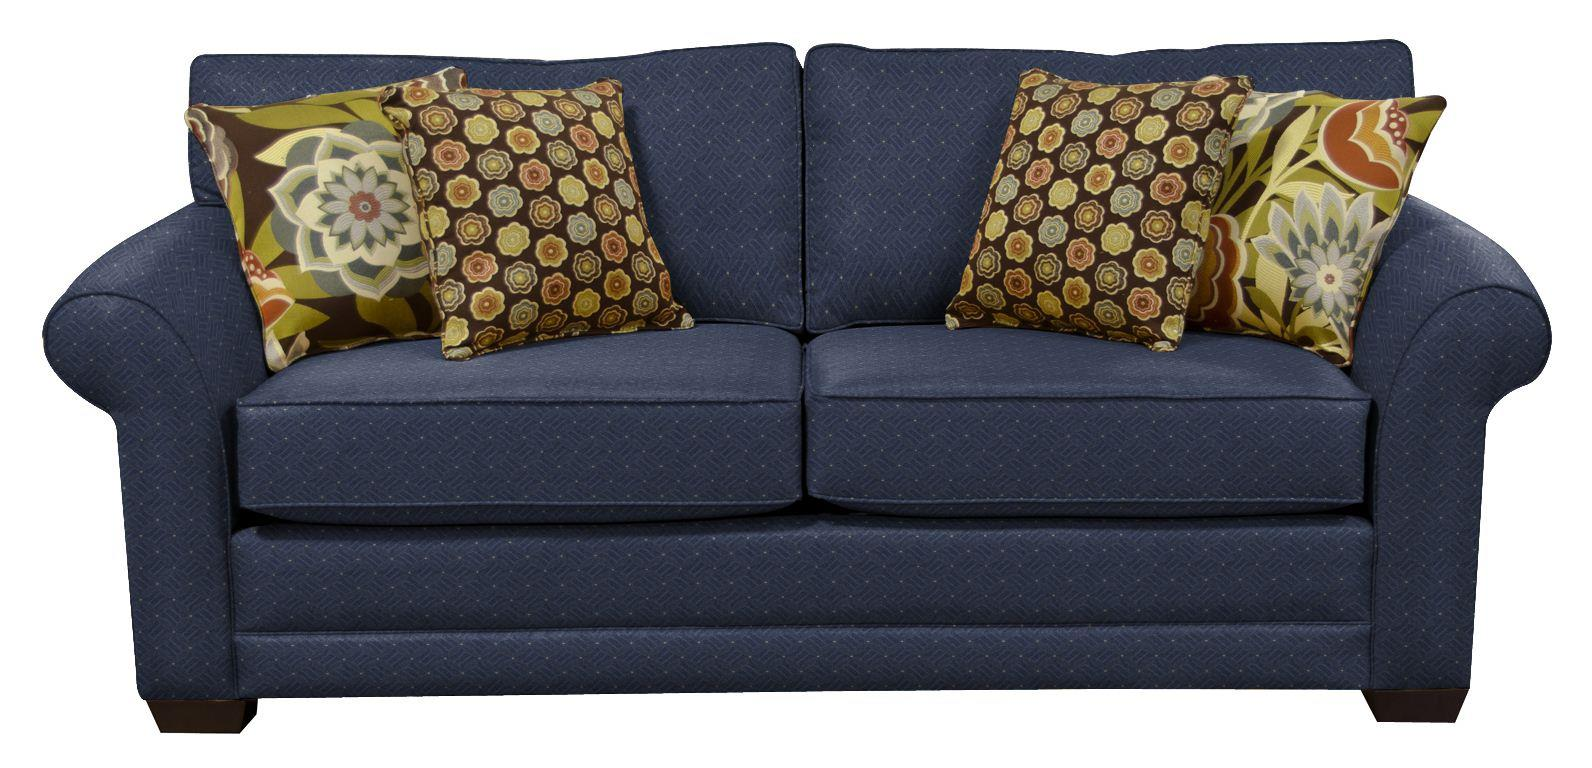 England Brantley Upholstered Sofa - Item Number: 5635-4900